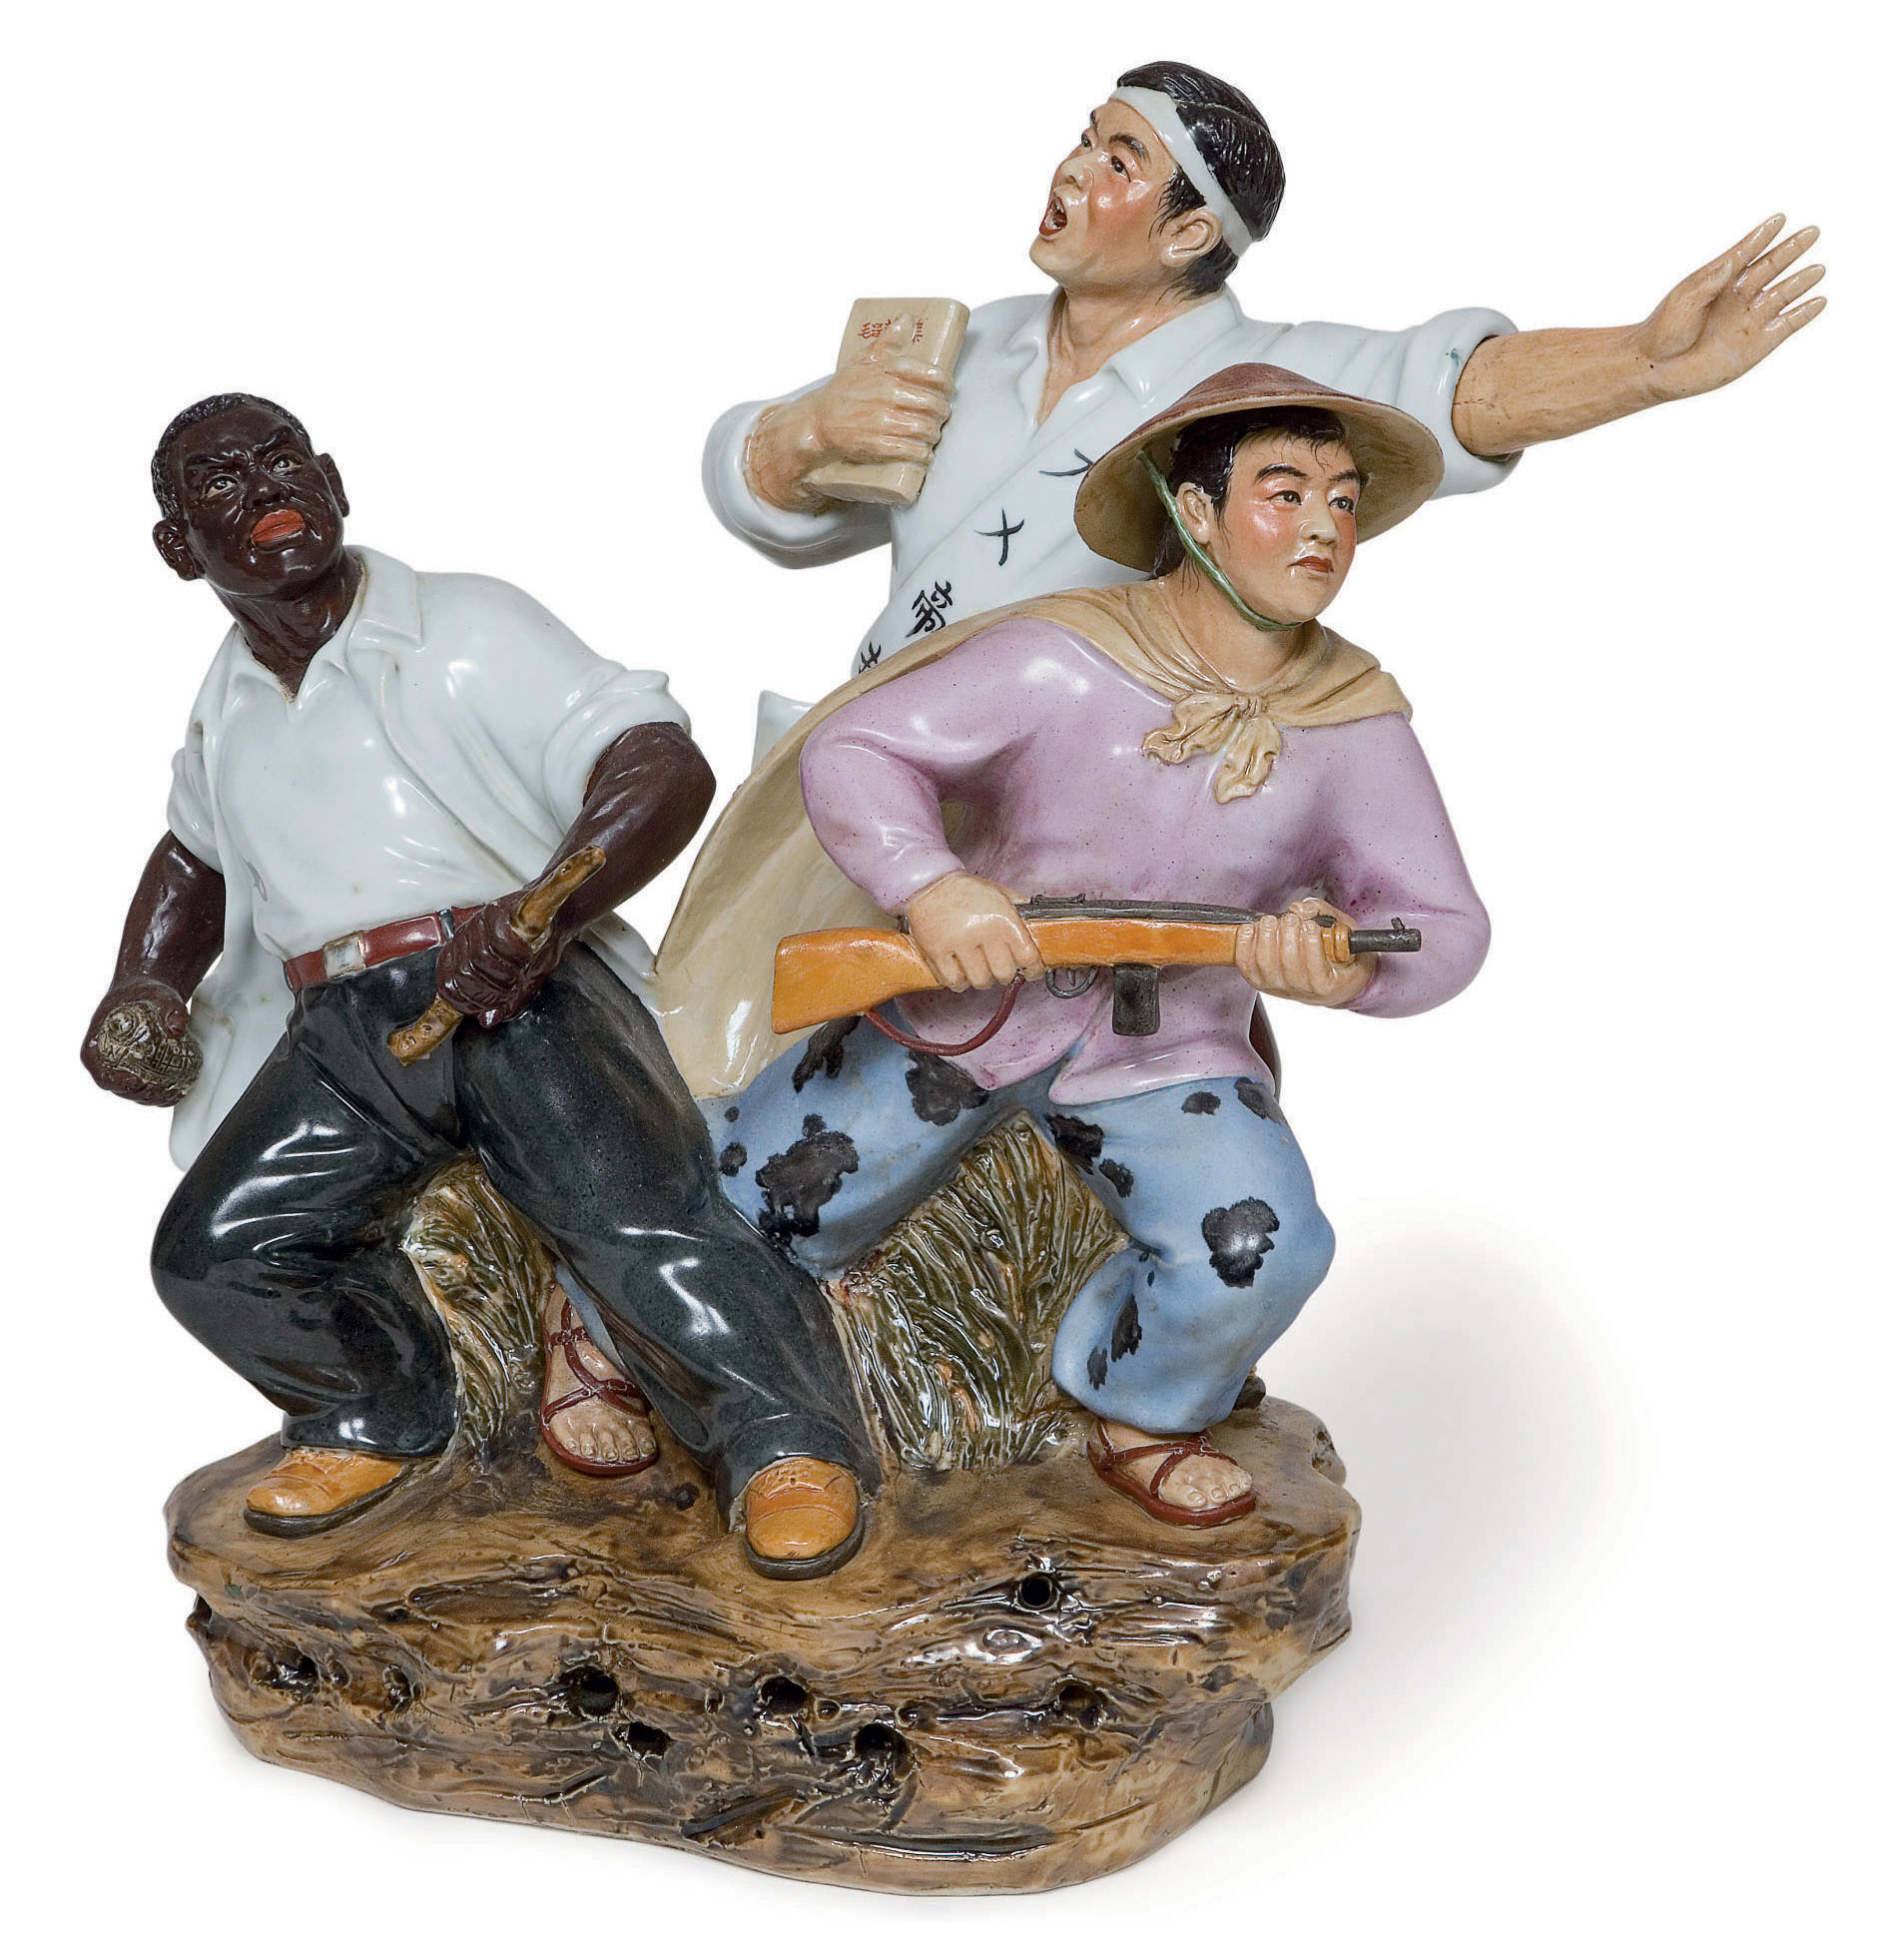 """A Fine Ceramic Group that Represents Asia, Africa and Latin America United depicting a Japanese protestor holding a copy of Mao Zedong's Selected Works and wearing a sash """"Down with Imperialism"""", with an African worker and a Vietcong soldier poiseed on a rock.  Althogether representing world unity of the proletarian people"""